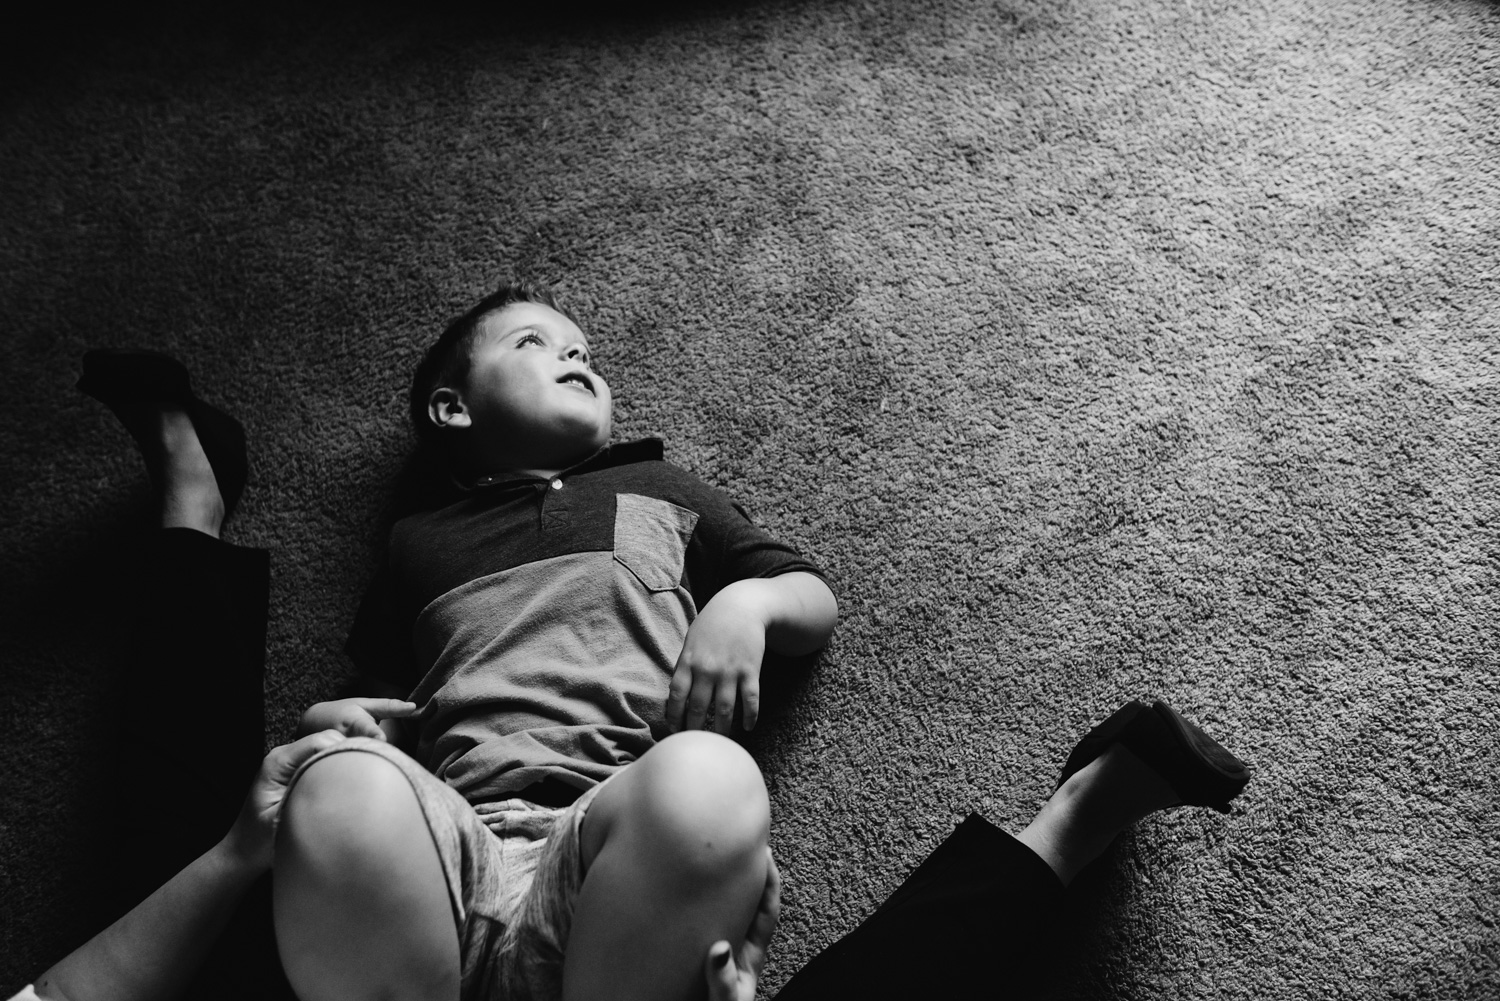 Angie_Klaus_photography_family-20.jpg